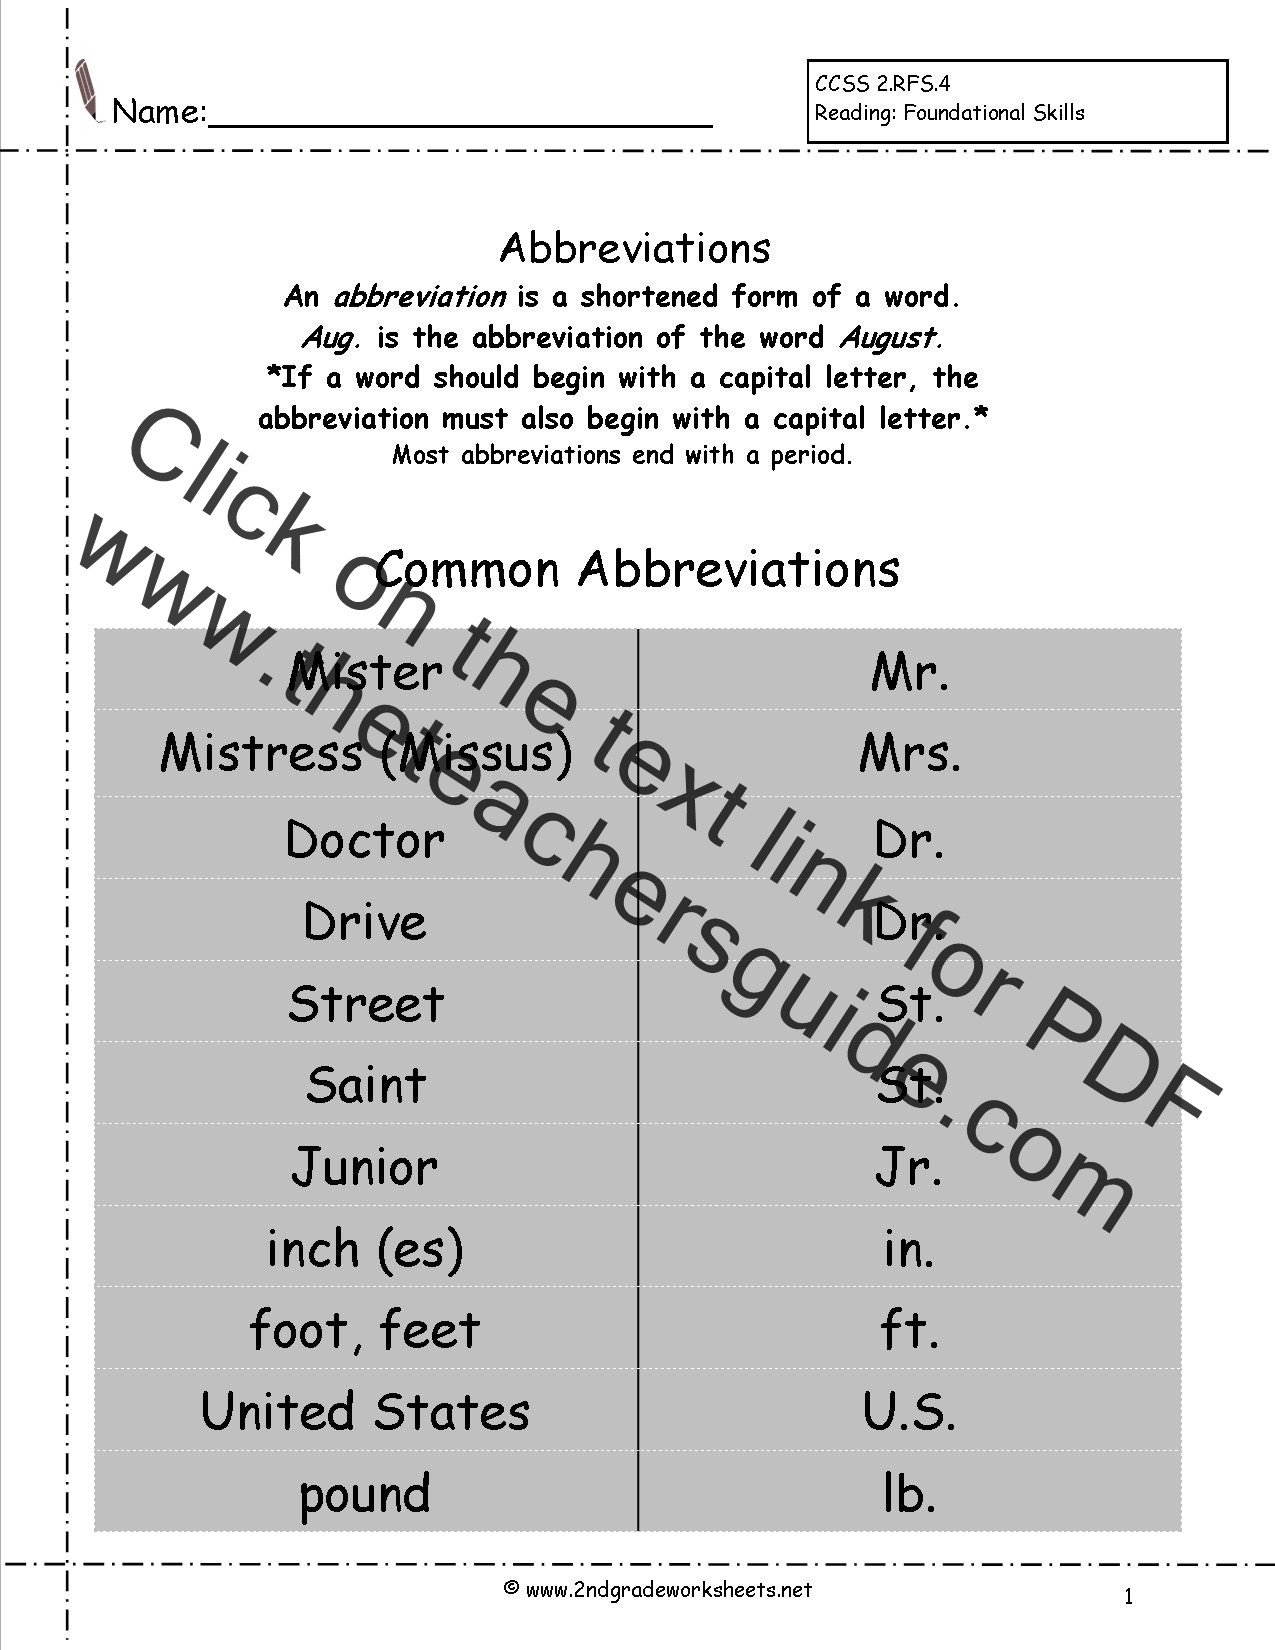 Grammar Worksheets for 3rd Grade Free Language Grammar Worksheets and Printouts